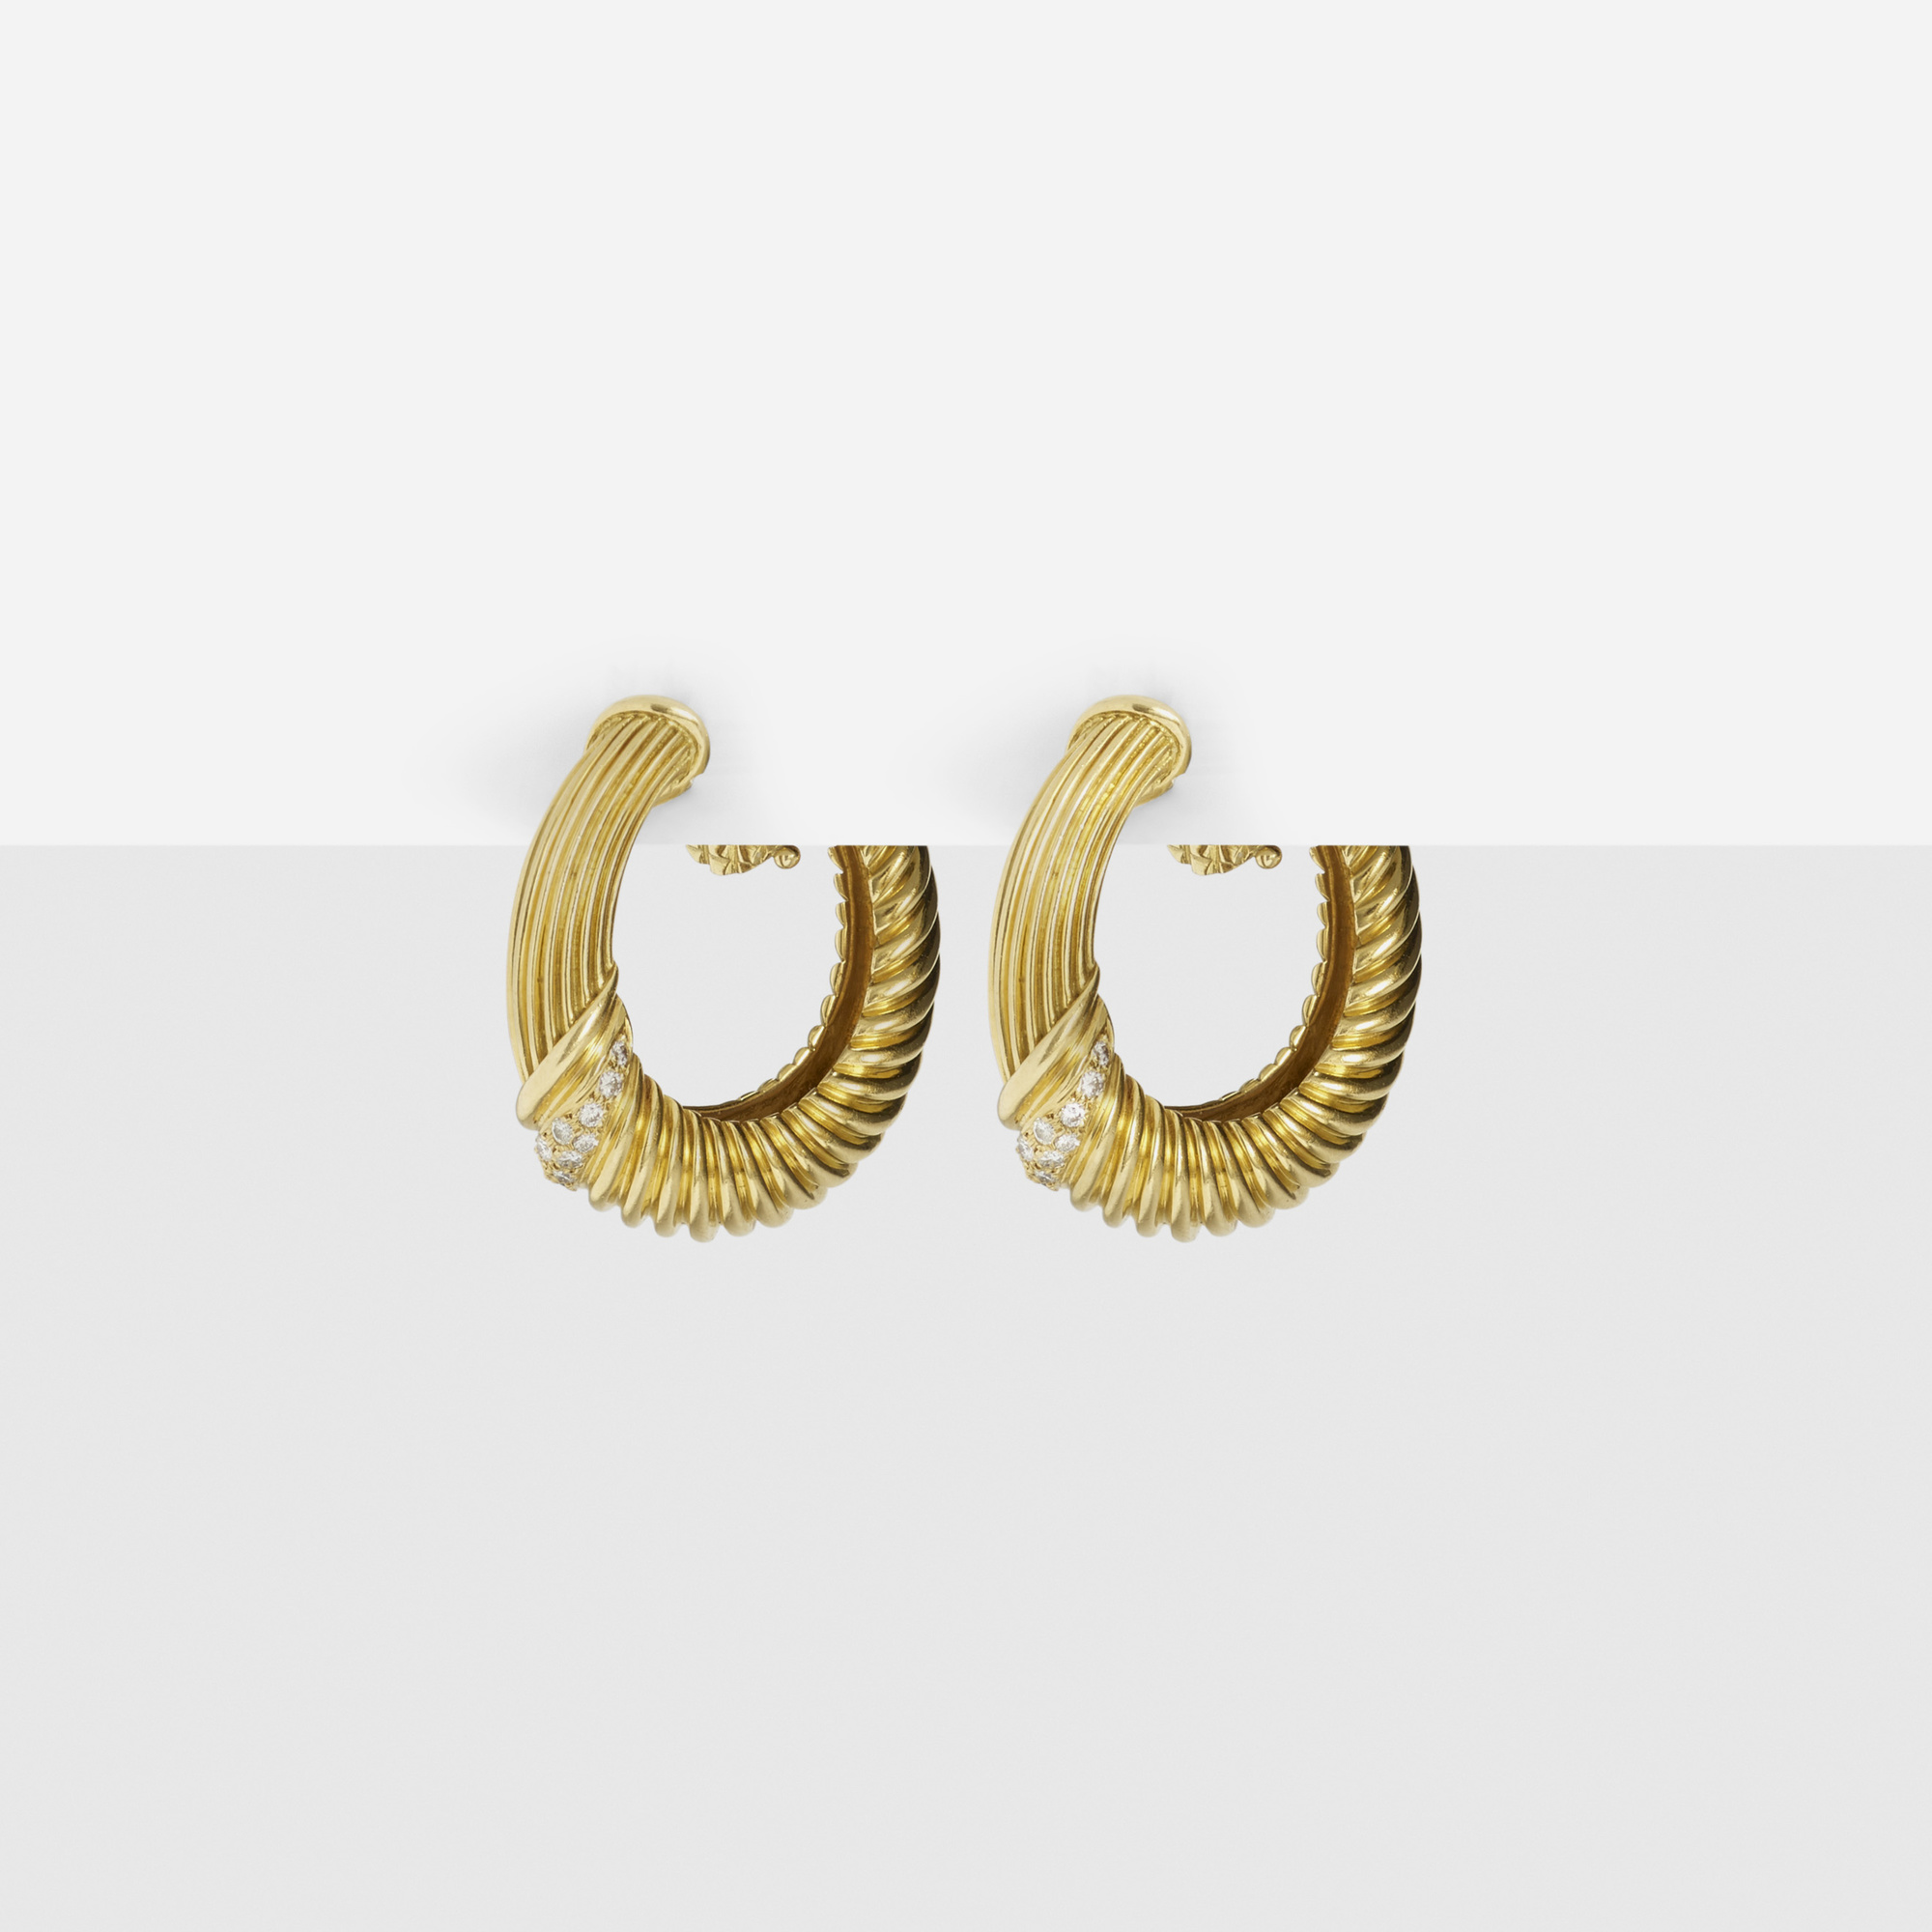 272:  / A pair of gold and diamond earrings (1 of 1)